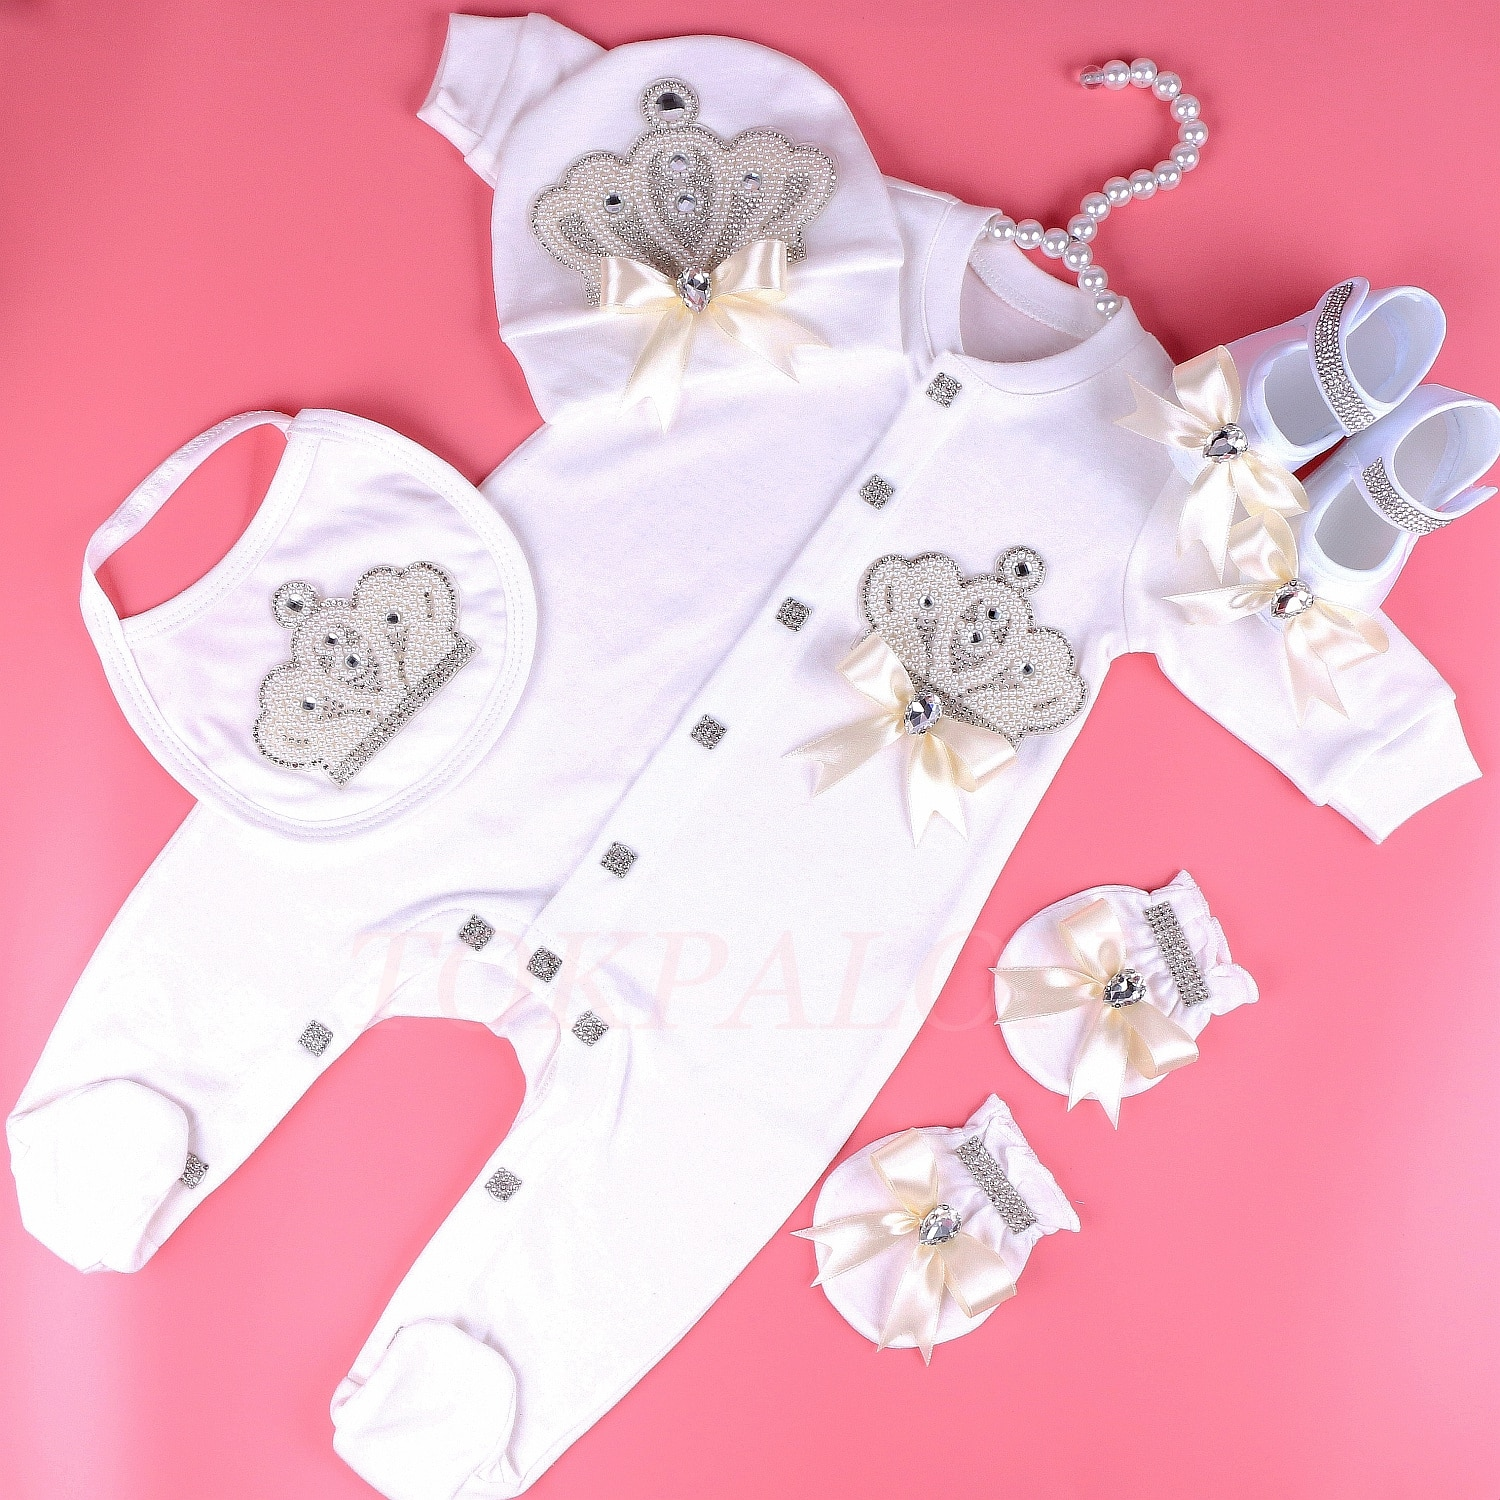 0-6 month baby girl clothes princess pearl crown with bow newborn Infant baby bodysuit Pajamas Outfit 2020 Baby Clothes Gift New